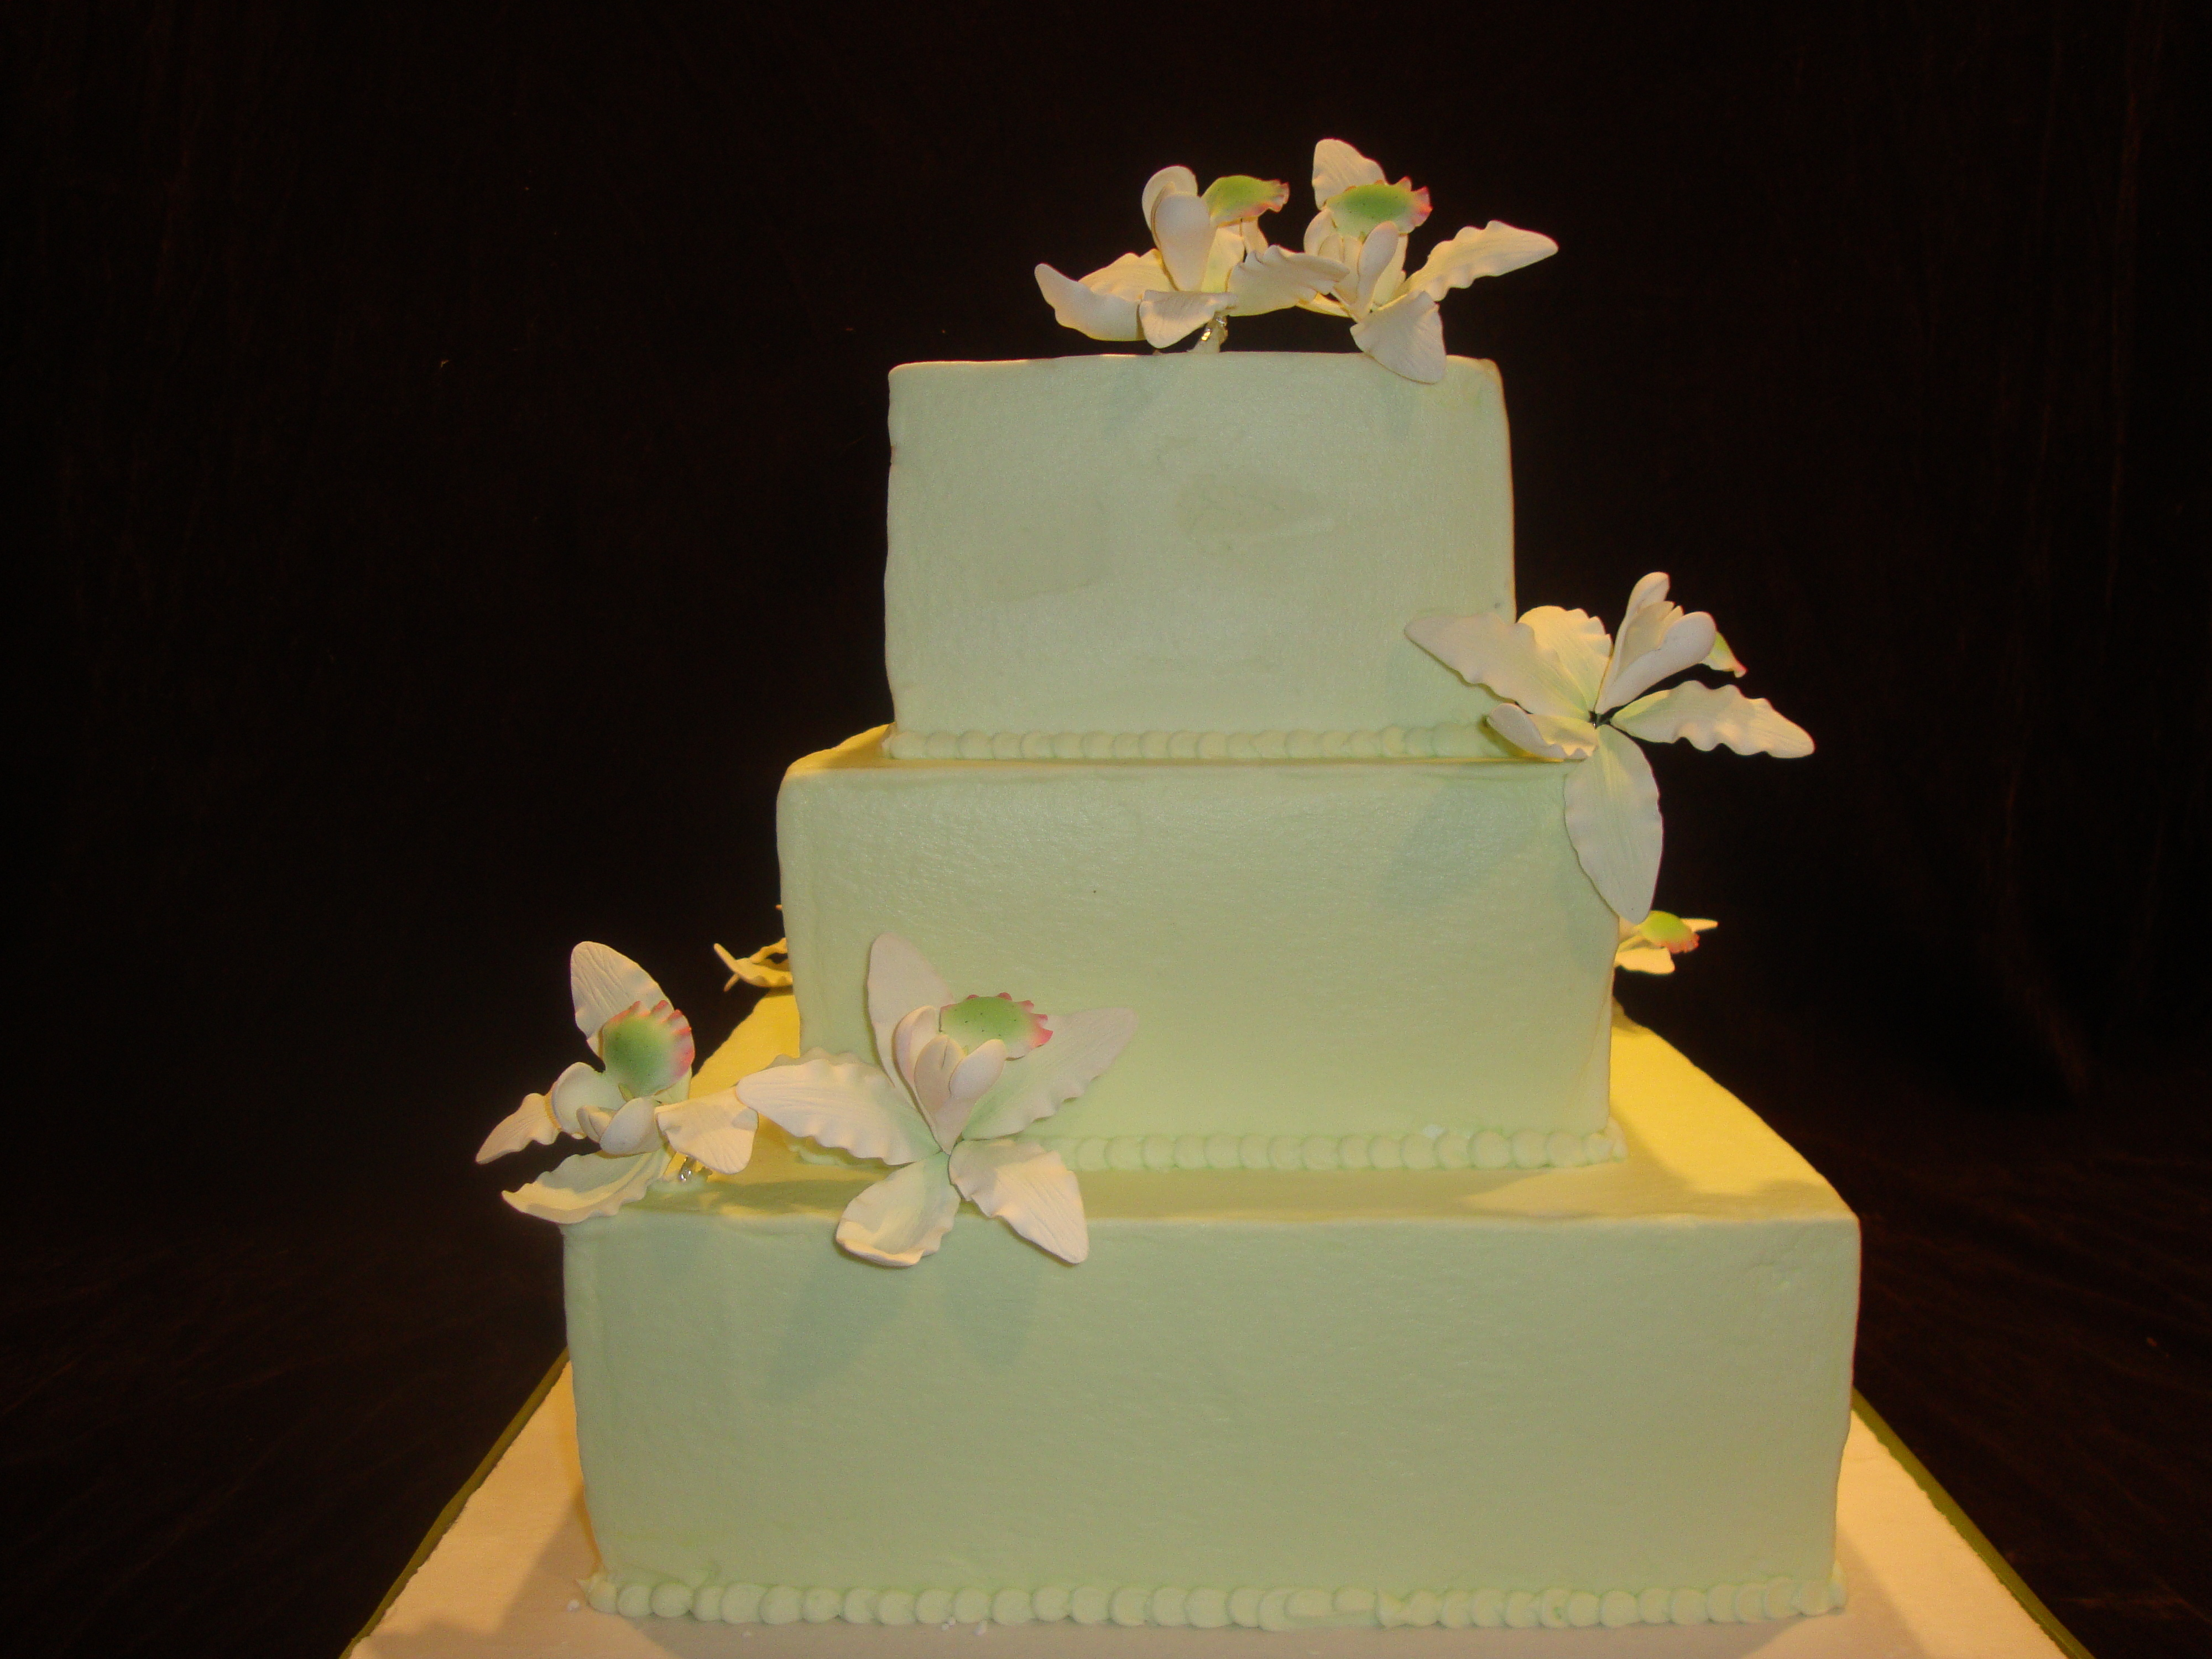 Cakes, white, green, cake, Modern, Modern Wedding Cakes, Wbs custom cakes